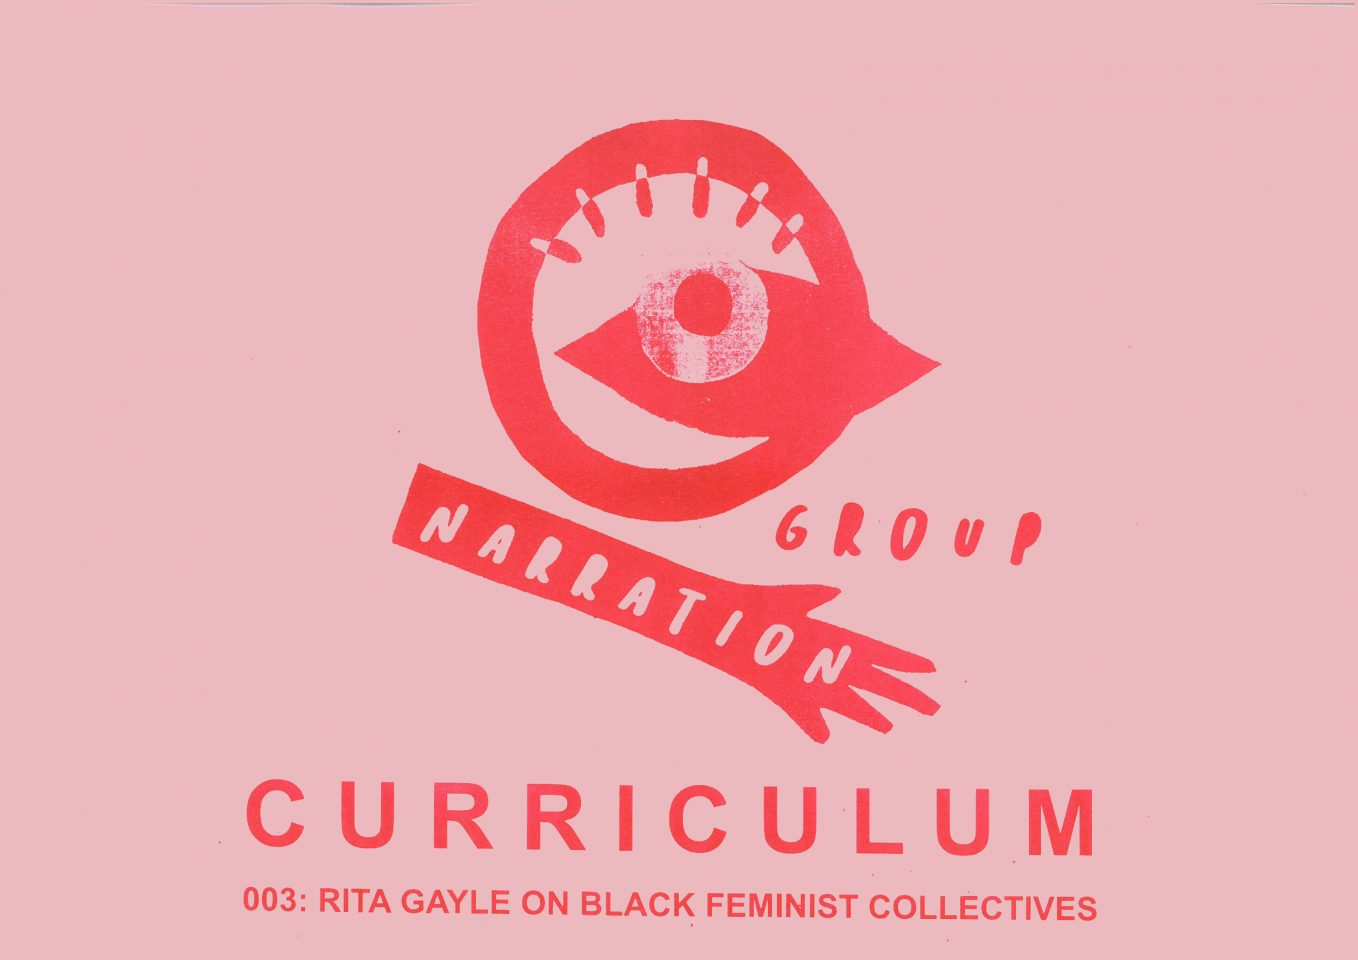 • CURRICULUM 003: Rita Gayle On Black Feminist Collectives